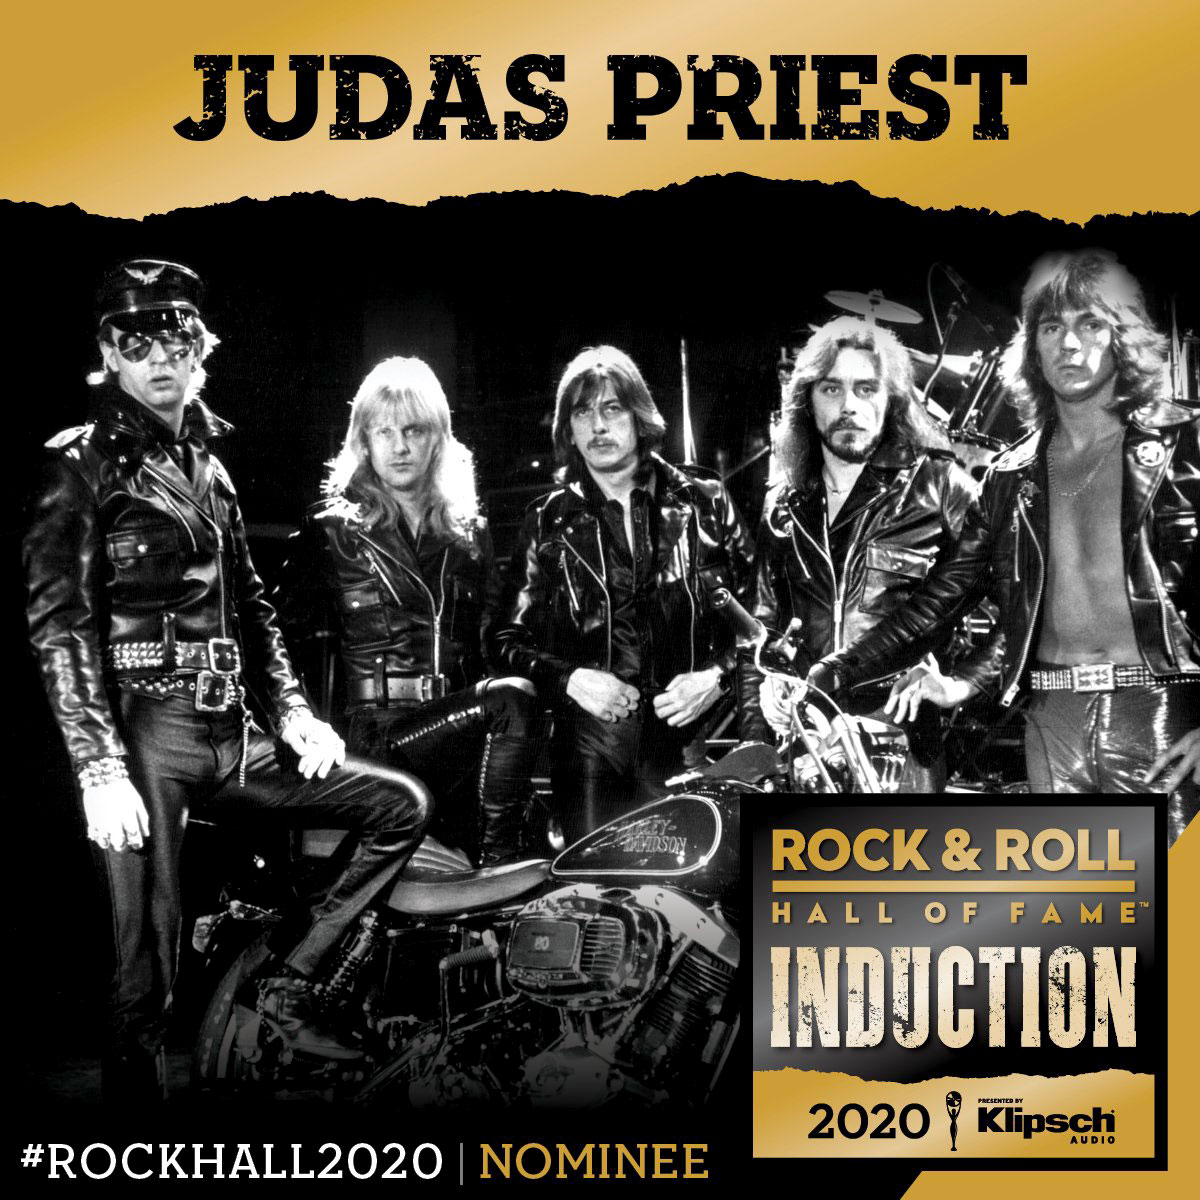 Induct Judas Priest into the Rock & Roll Hall Of Fame